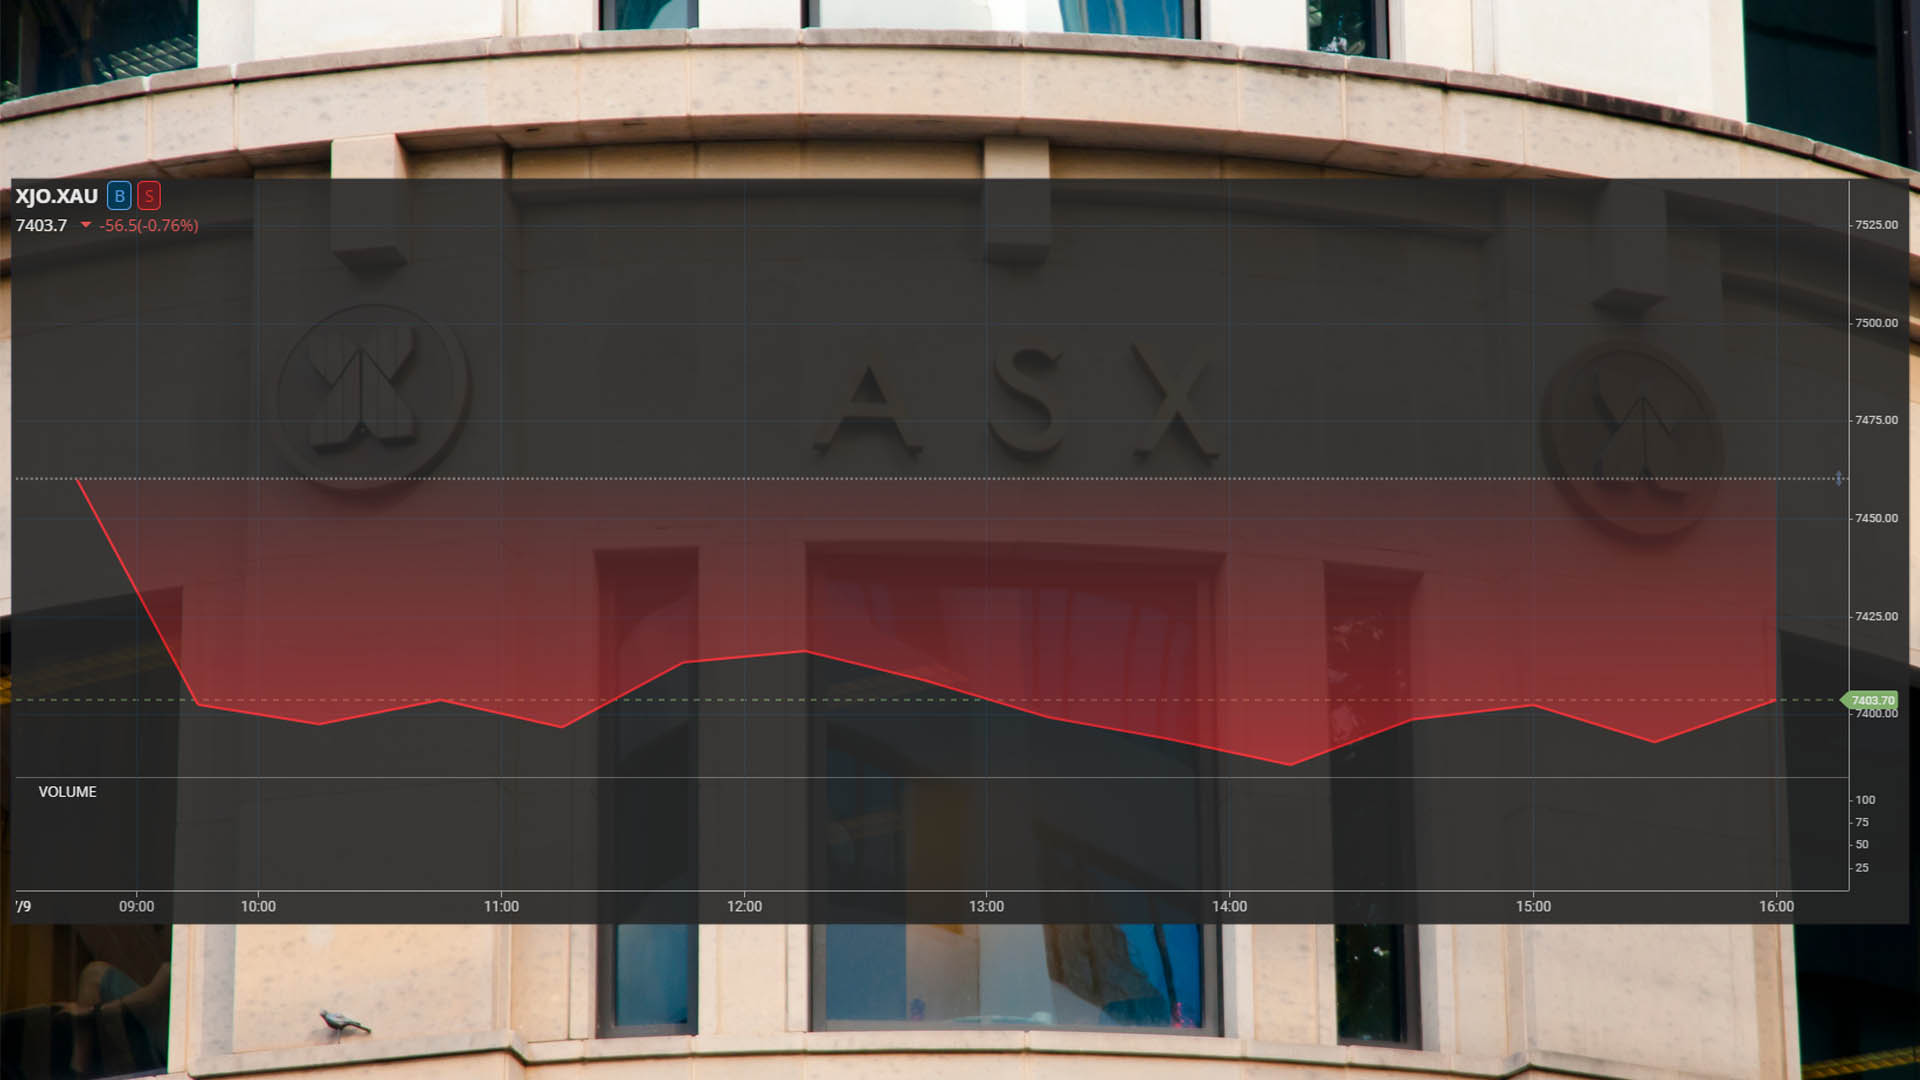 ASX declines for second week, miners tumble: Aus shares close 0.8% lower